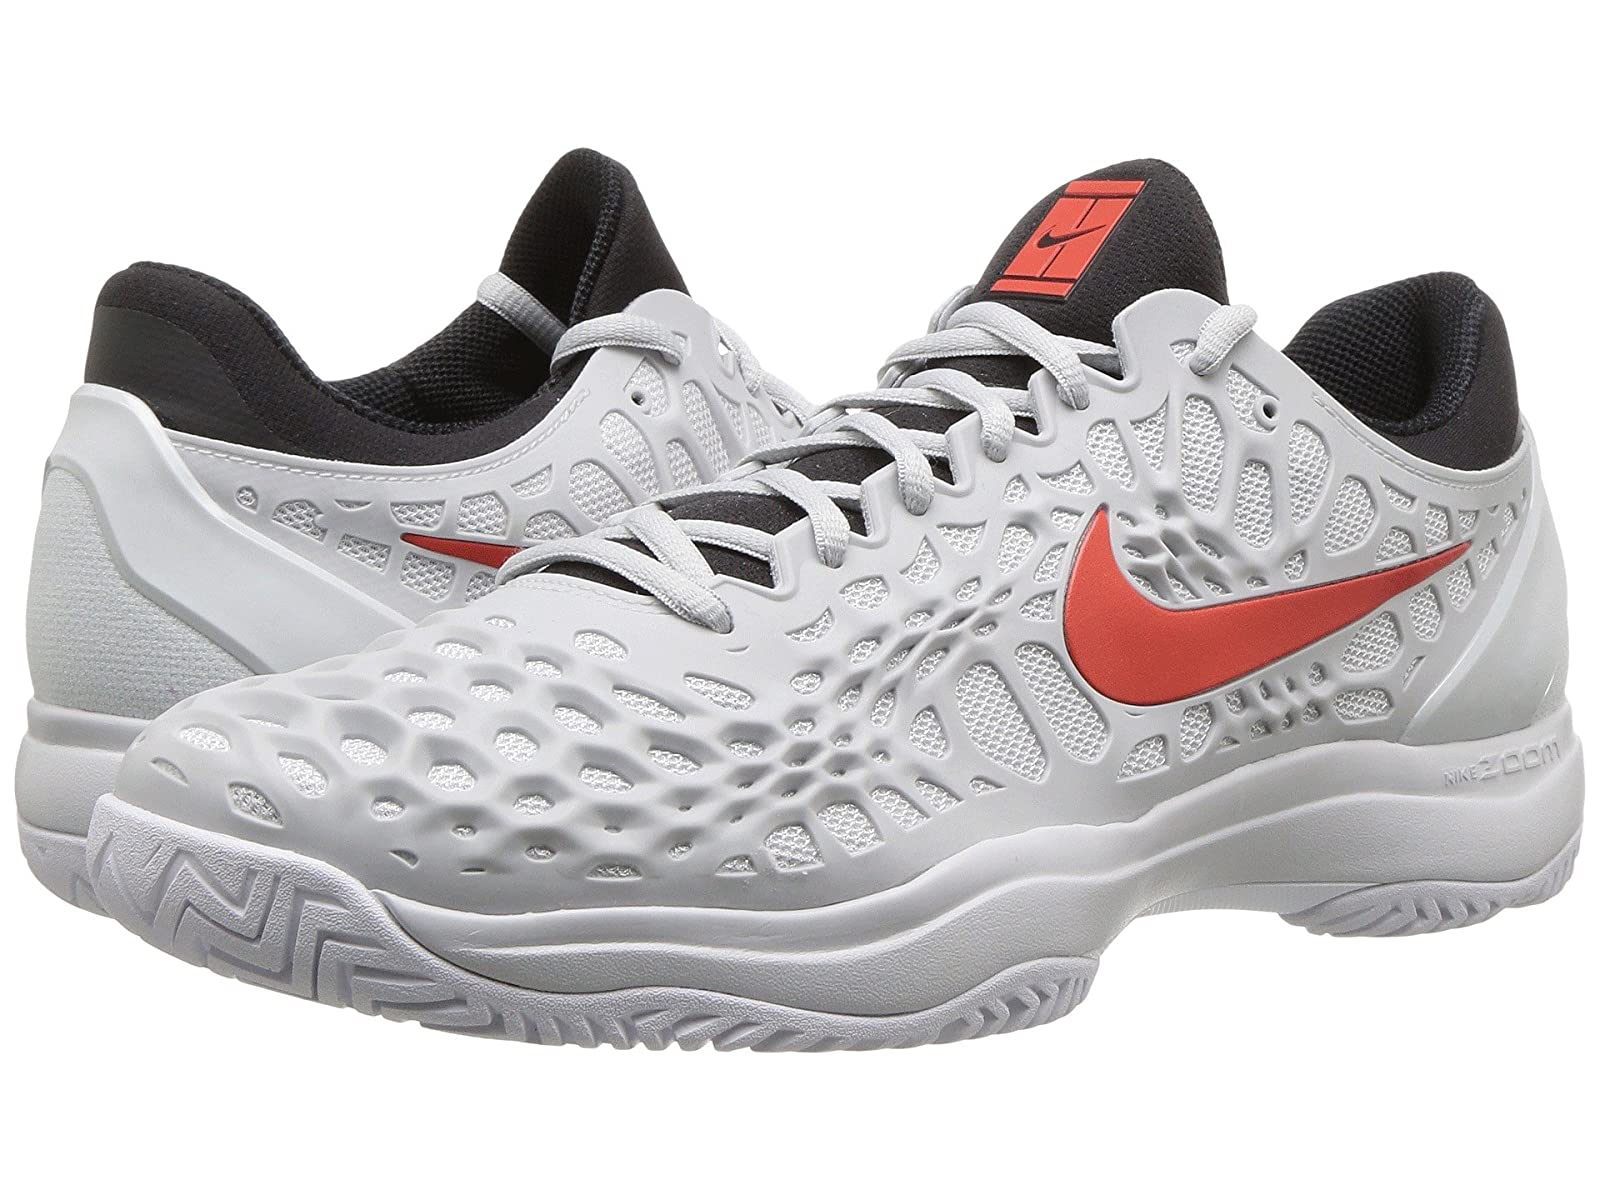 Nike Zoom Cage Cage Cage 3 HC d24300